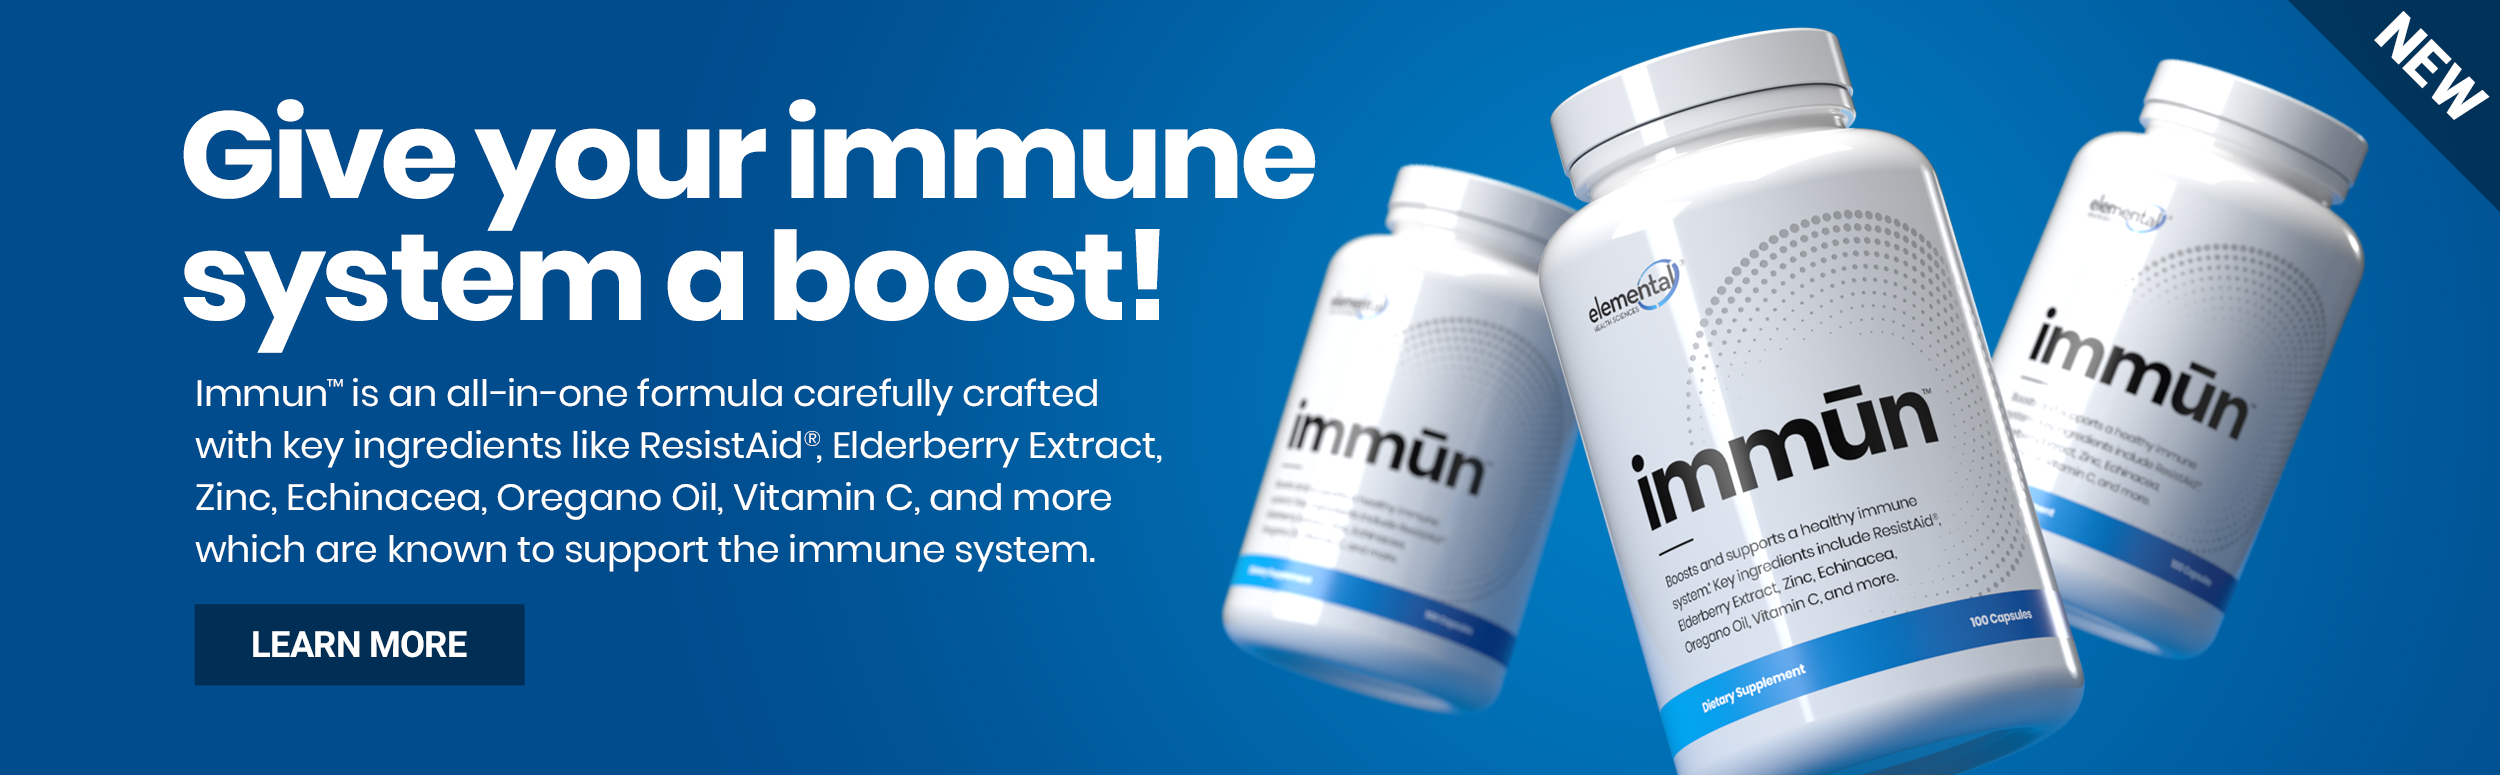 elemental -immun - give your immune system a boost! click to learn more